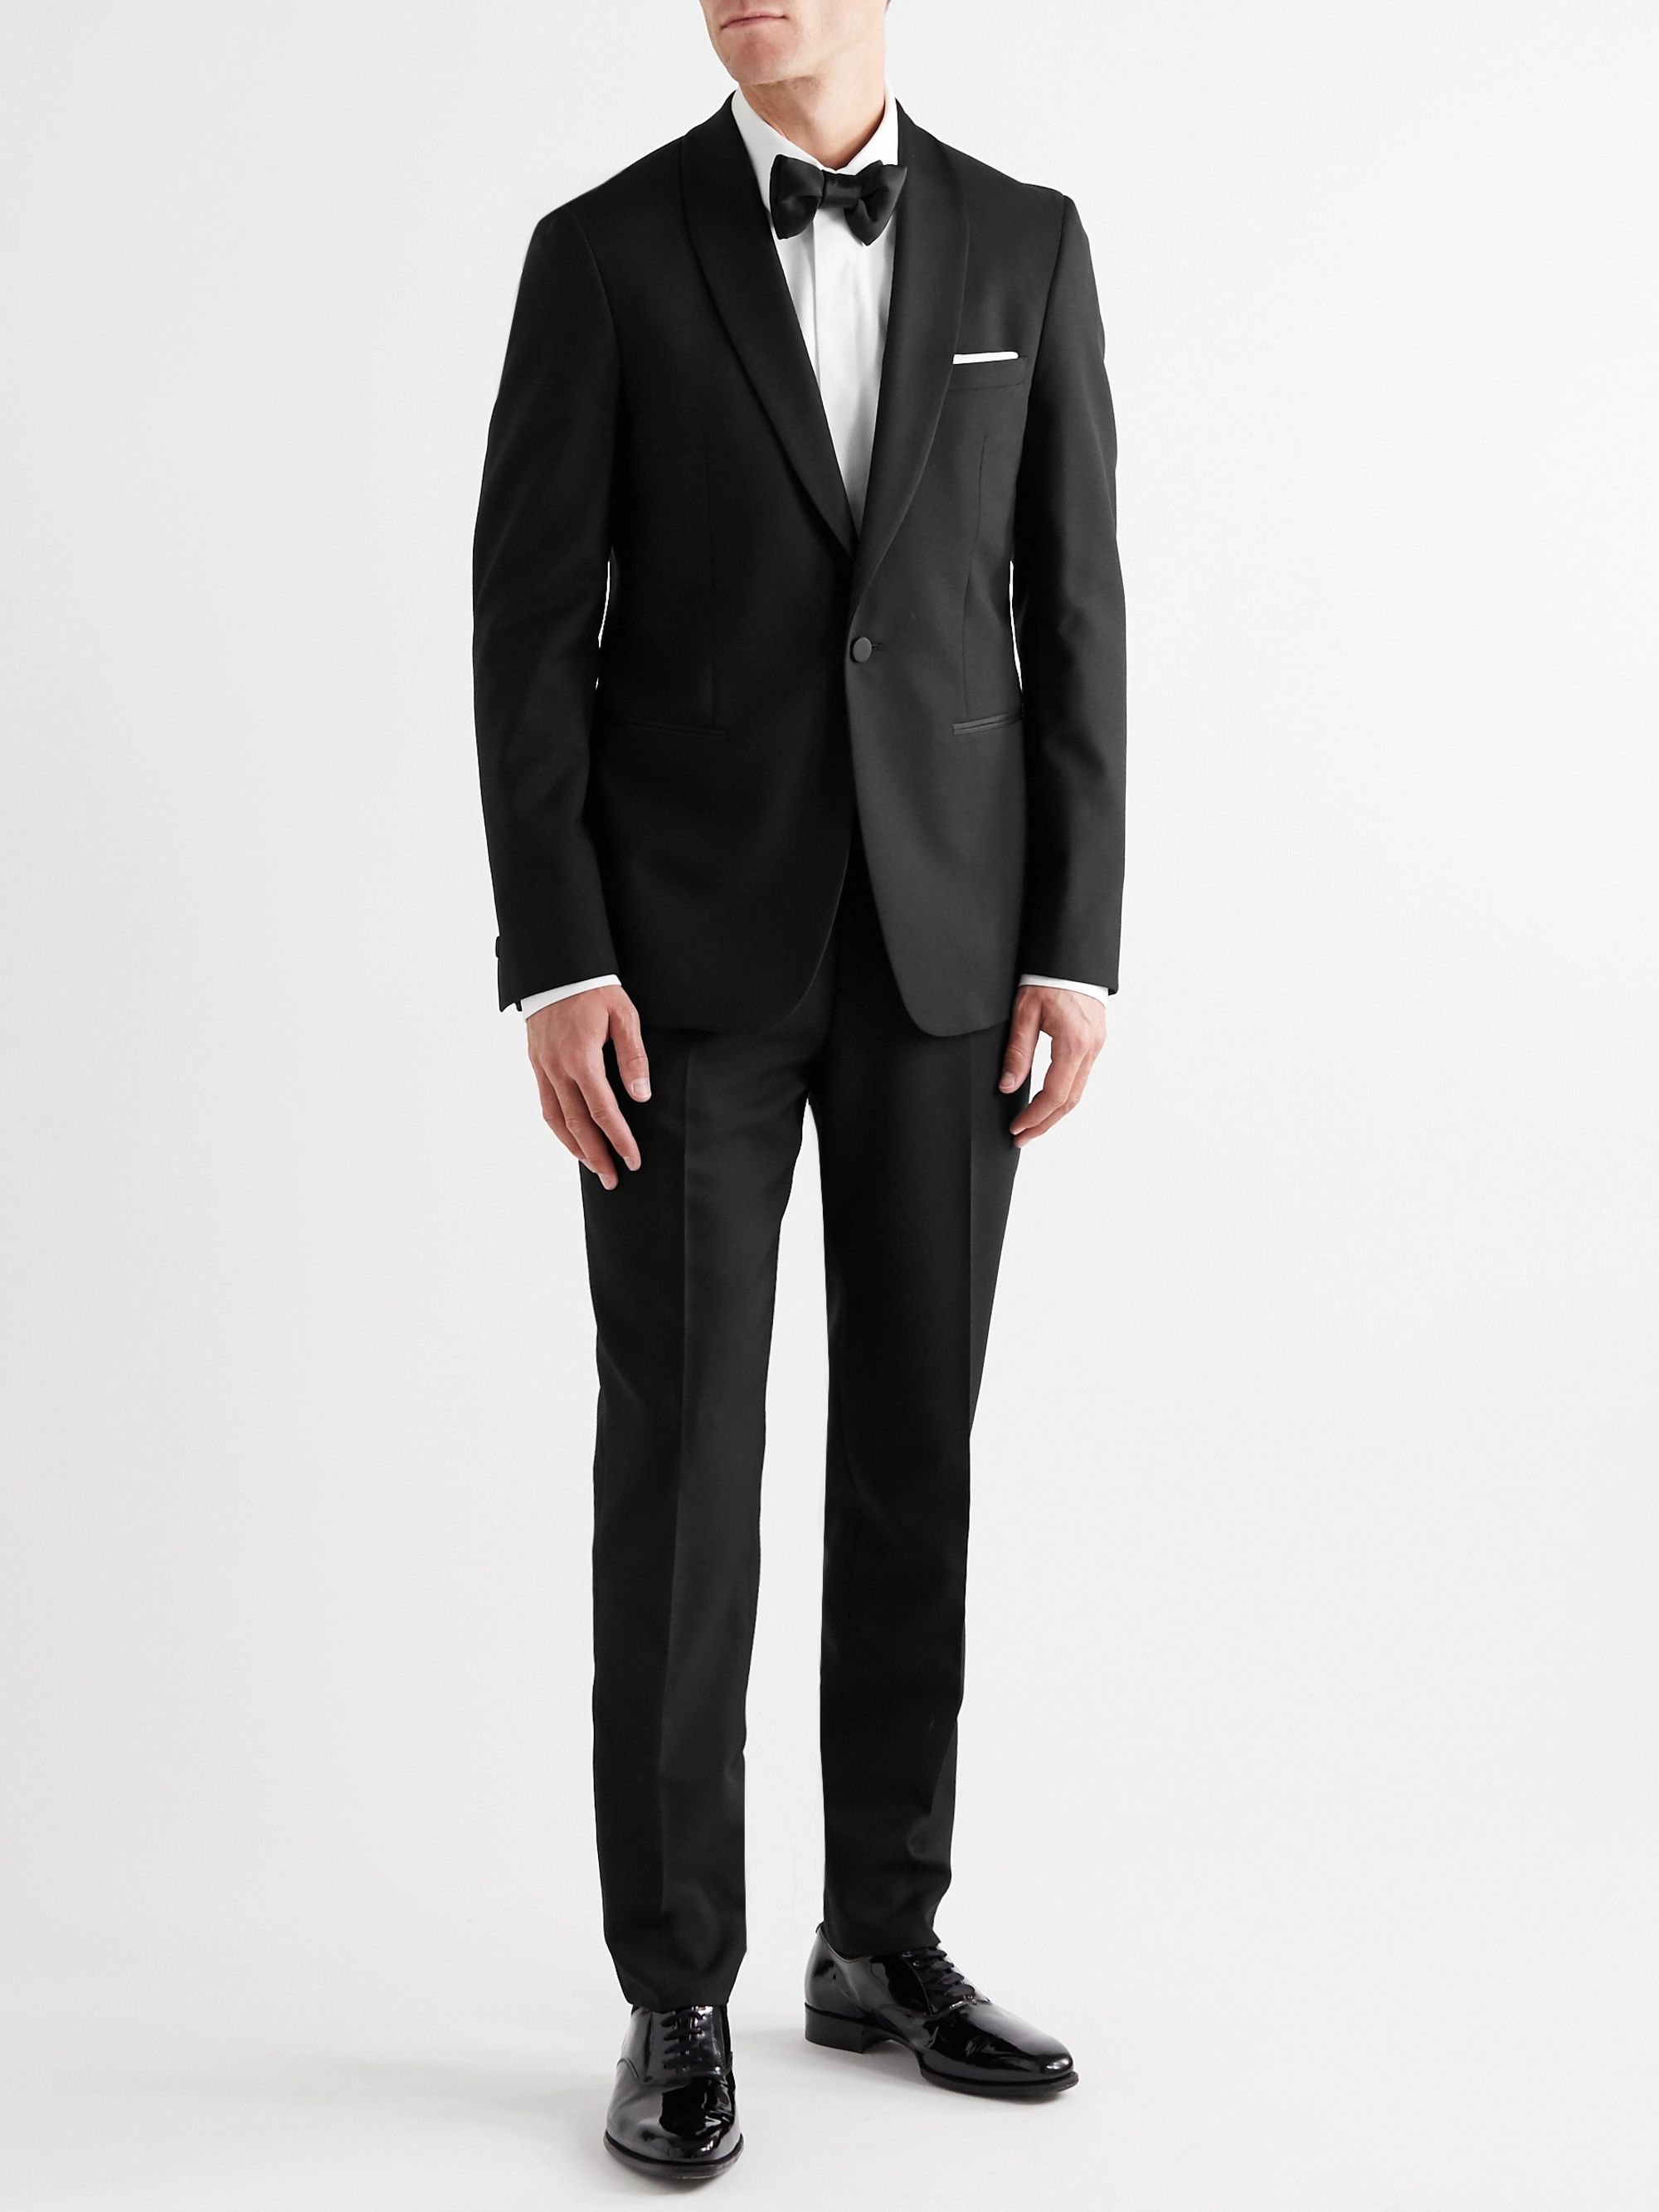 Mr P. Black Slim-Fit Shawl-Collar Faille-Trimmed Virgin Wool Tuxedo Jacket